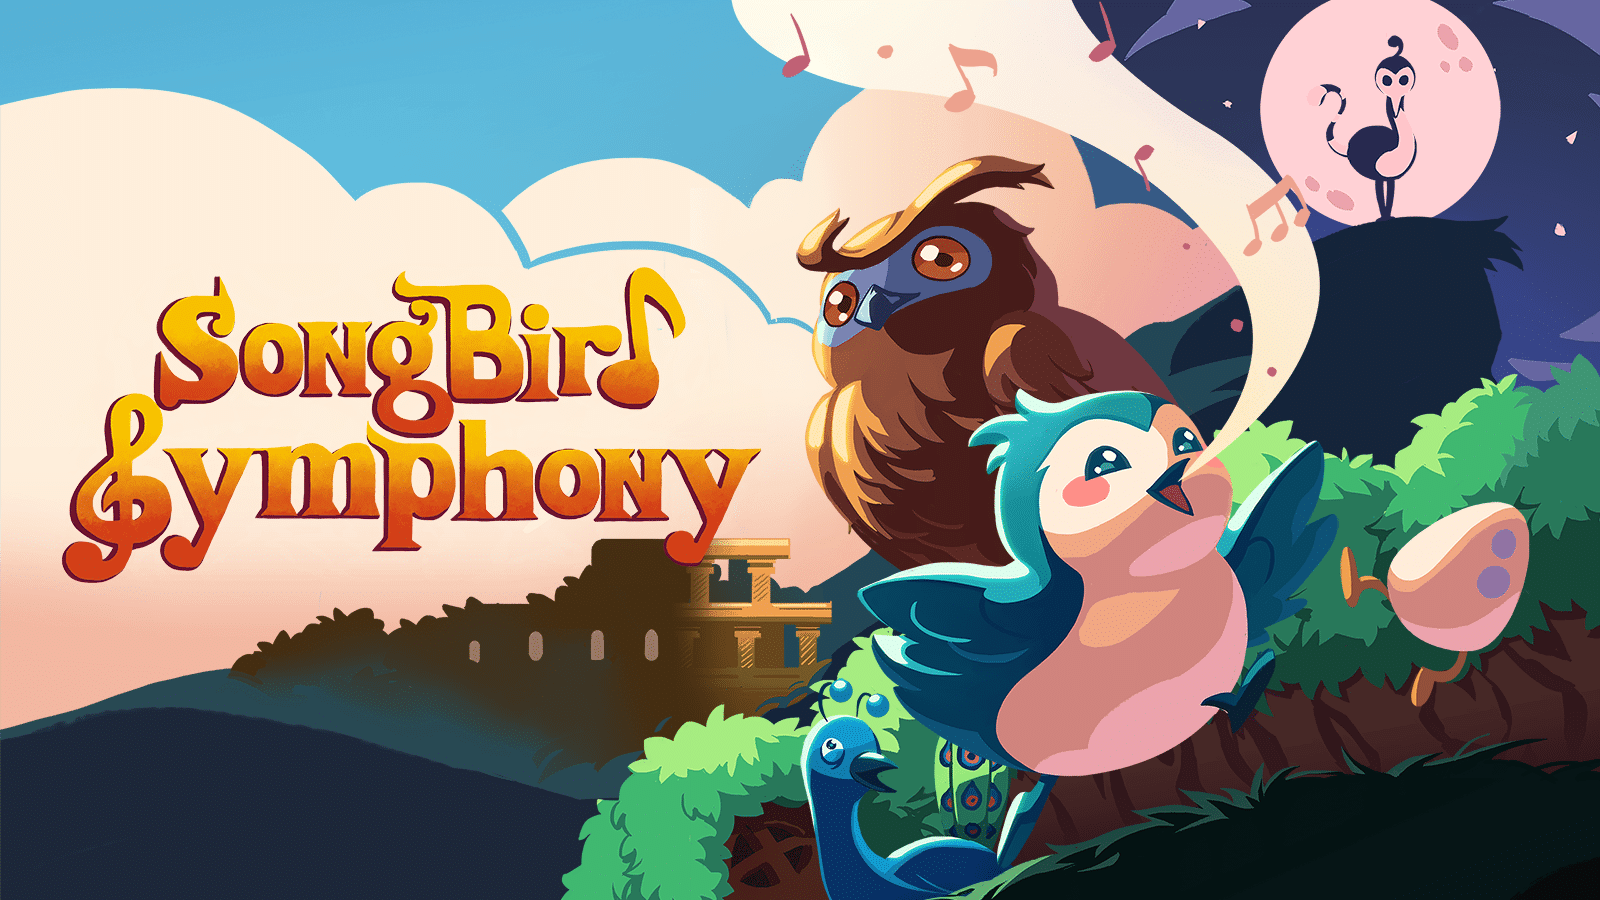 Songbird Symphony PC Version Full Game Free Download 2019